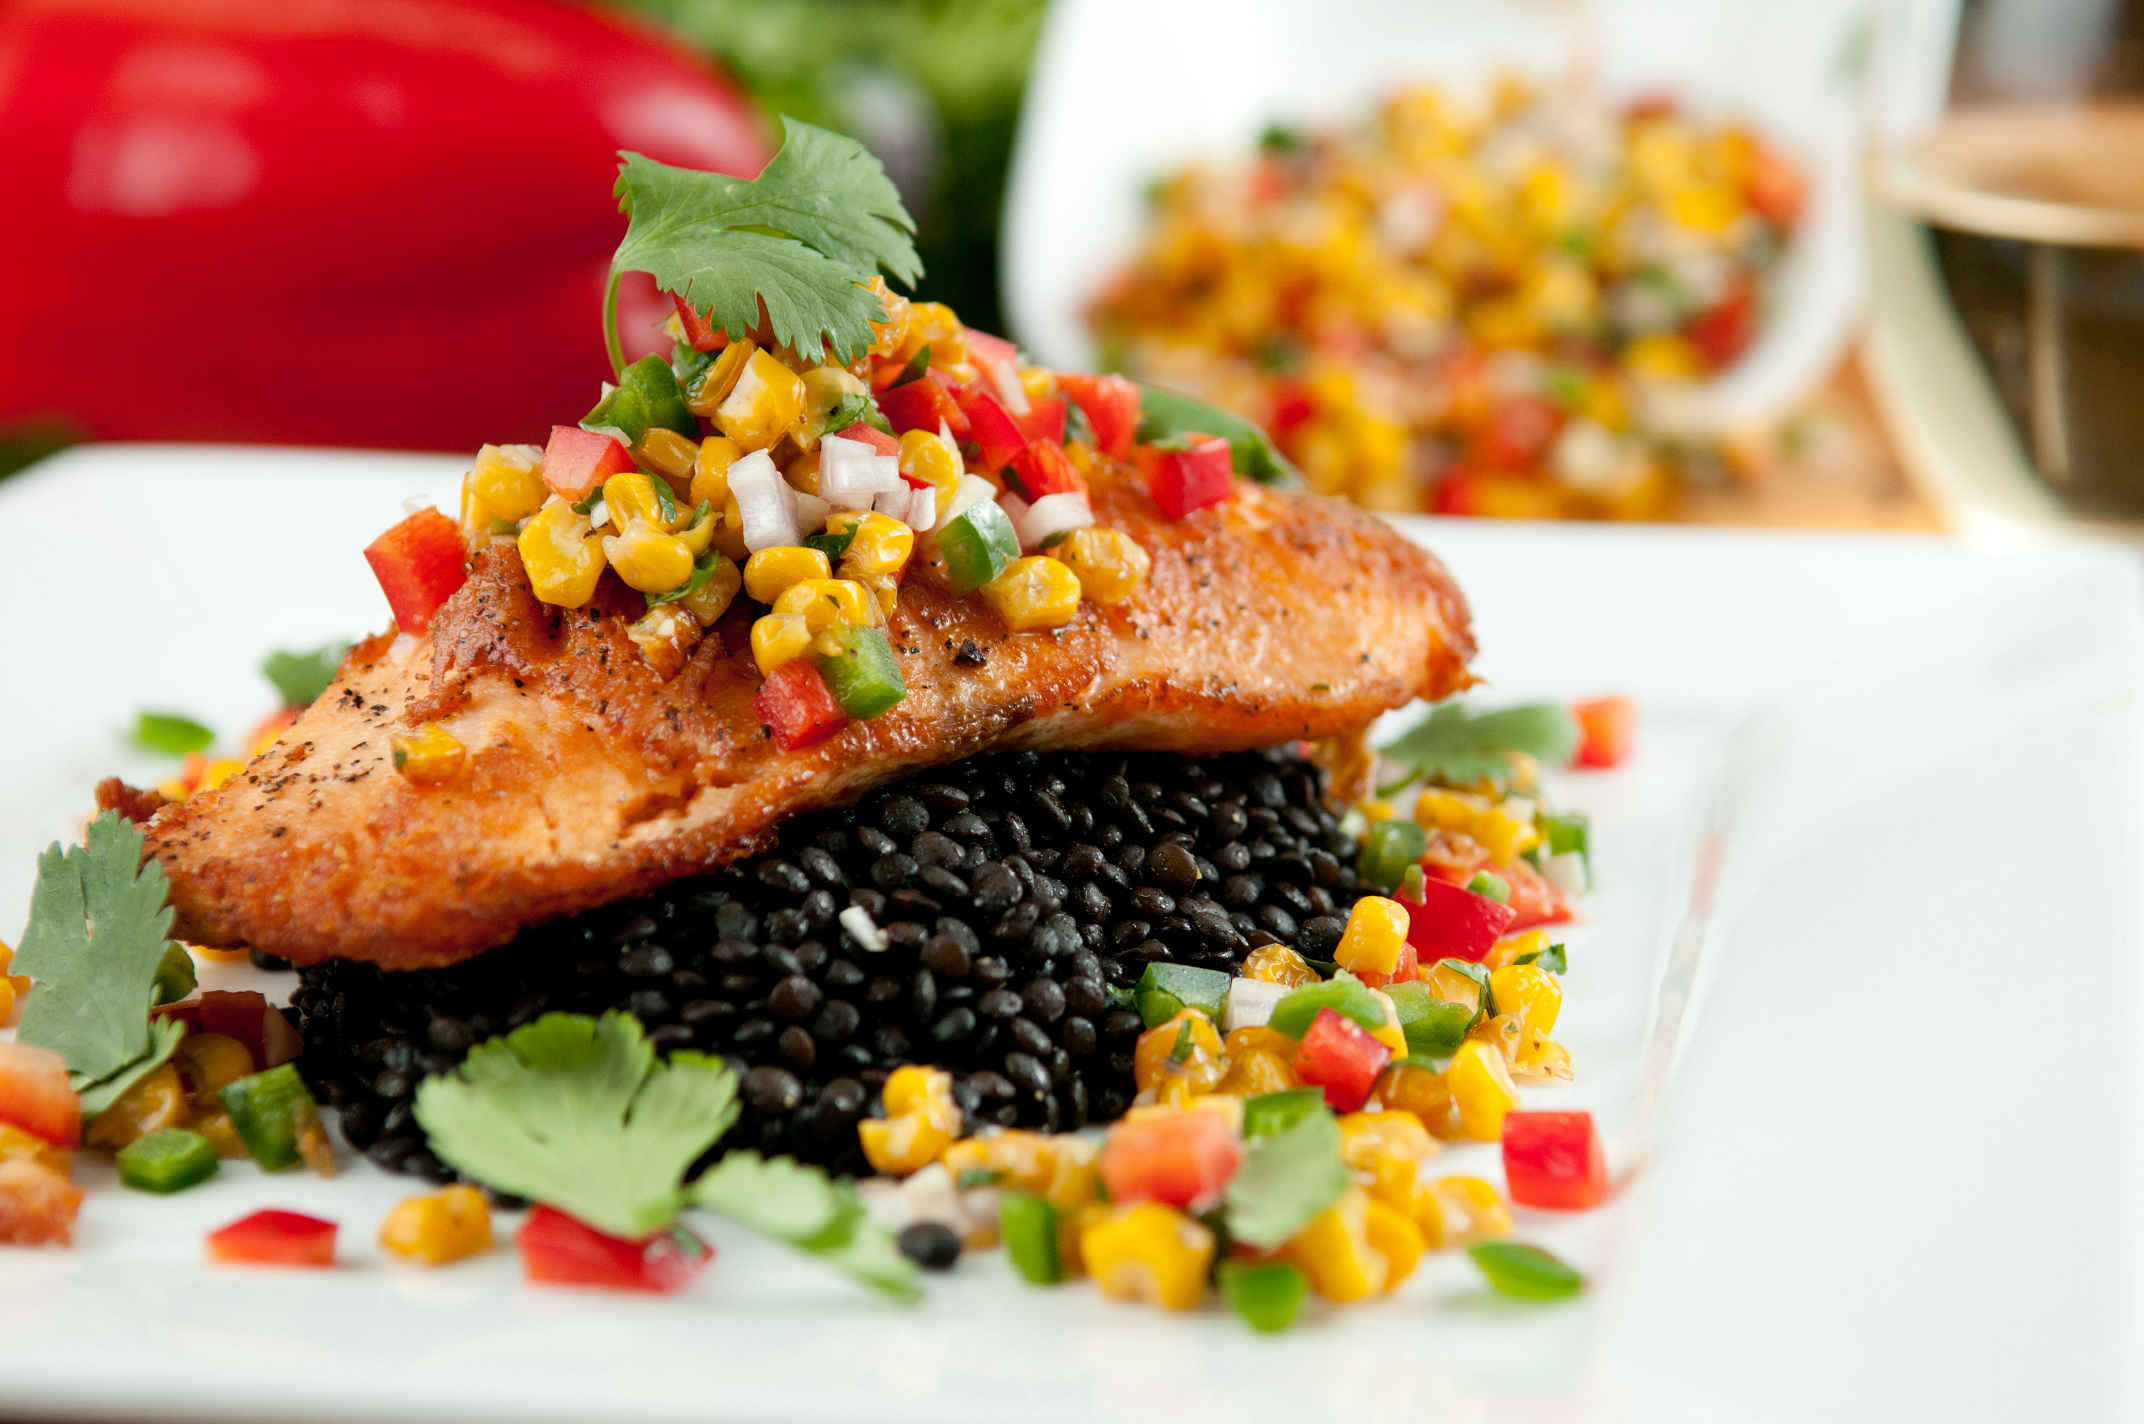 Pan_seared_salmon_with_corn_salsa_plated